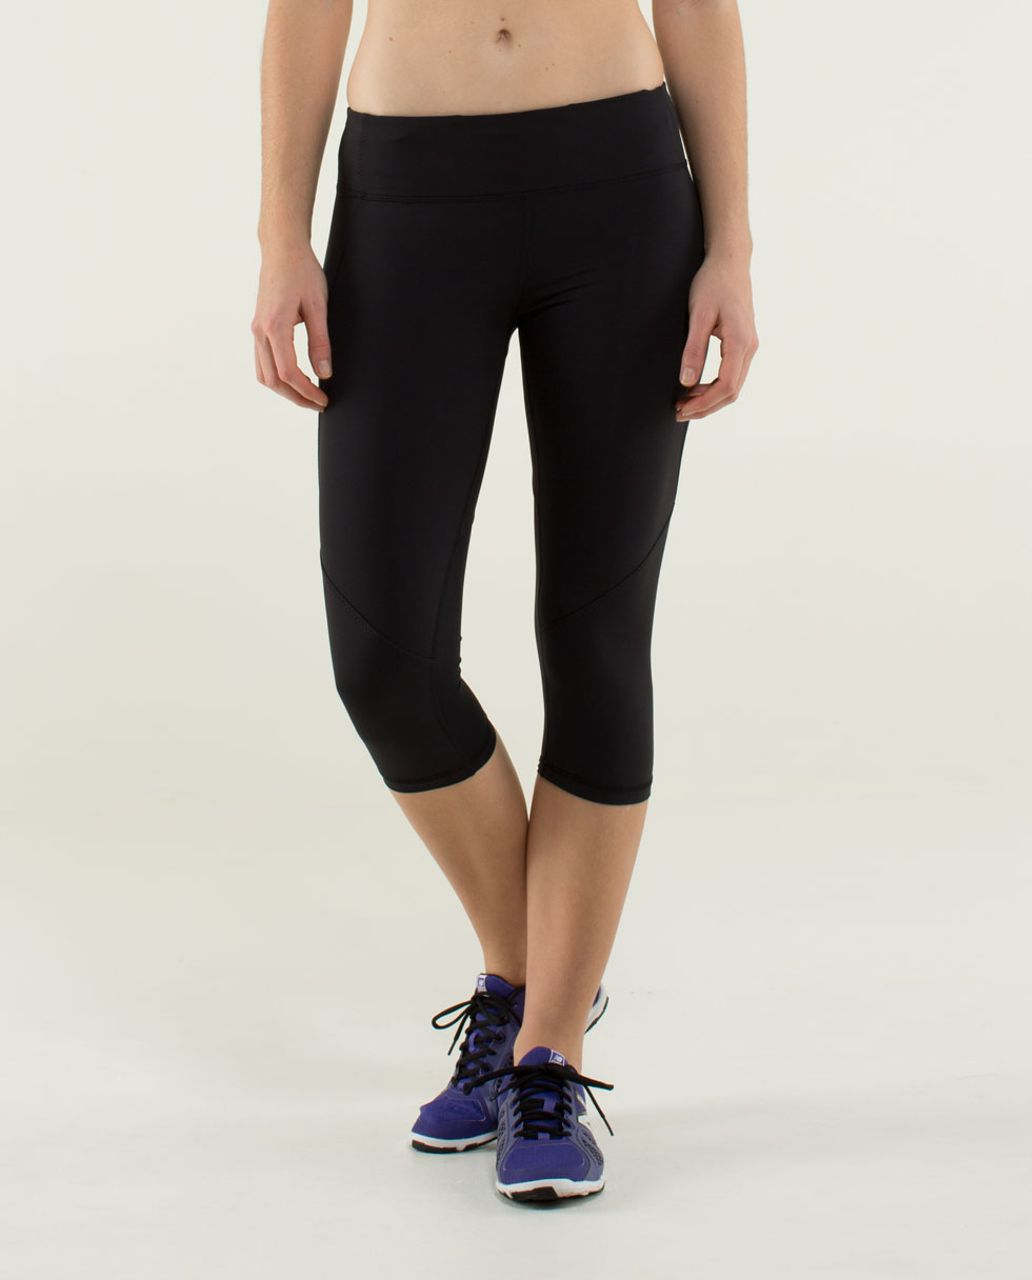 Lululemon Run:  Mod Moves Crop - Black